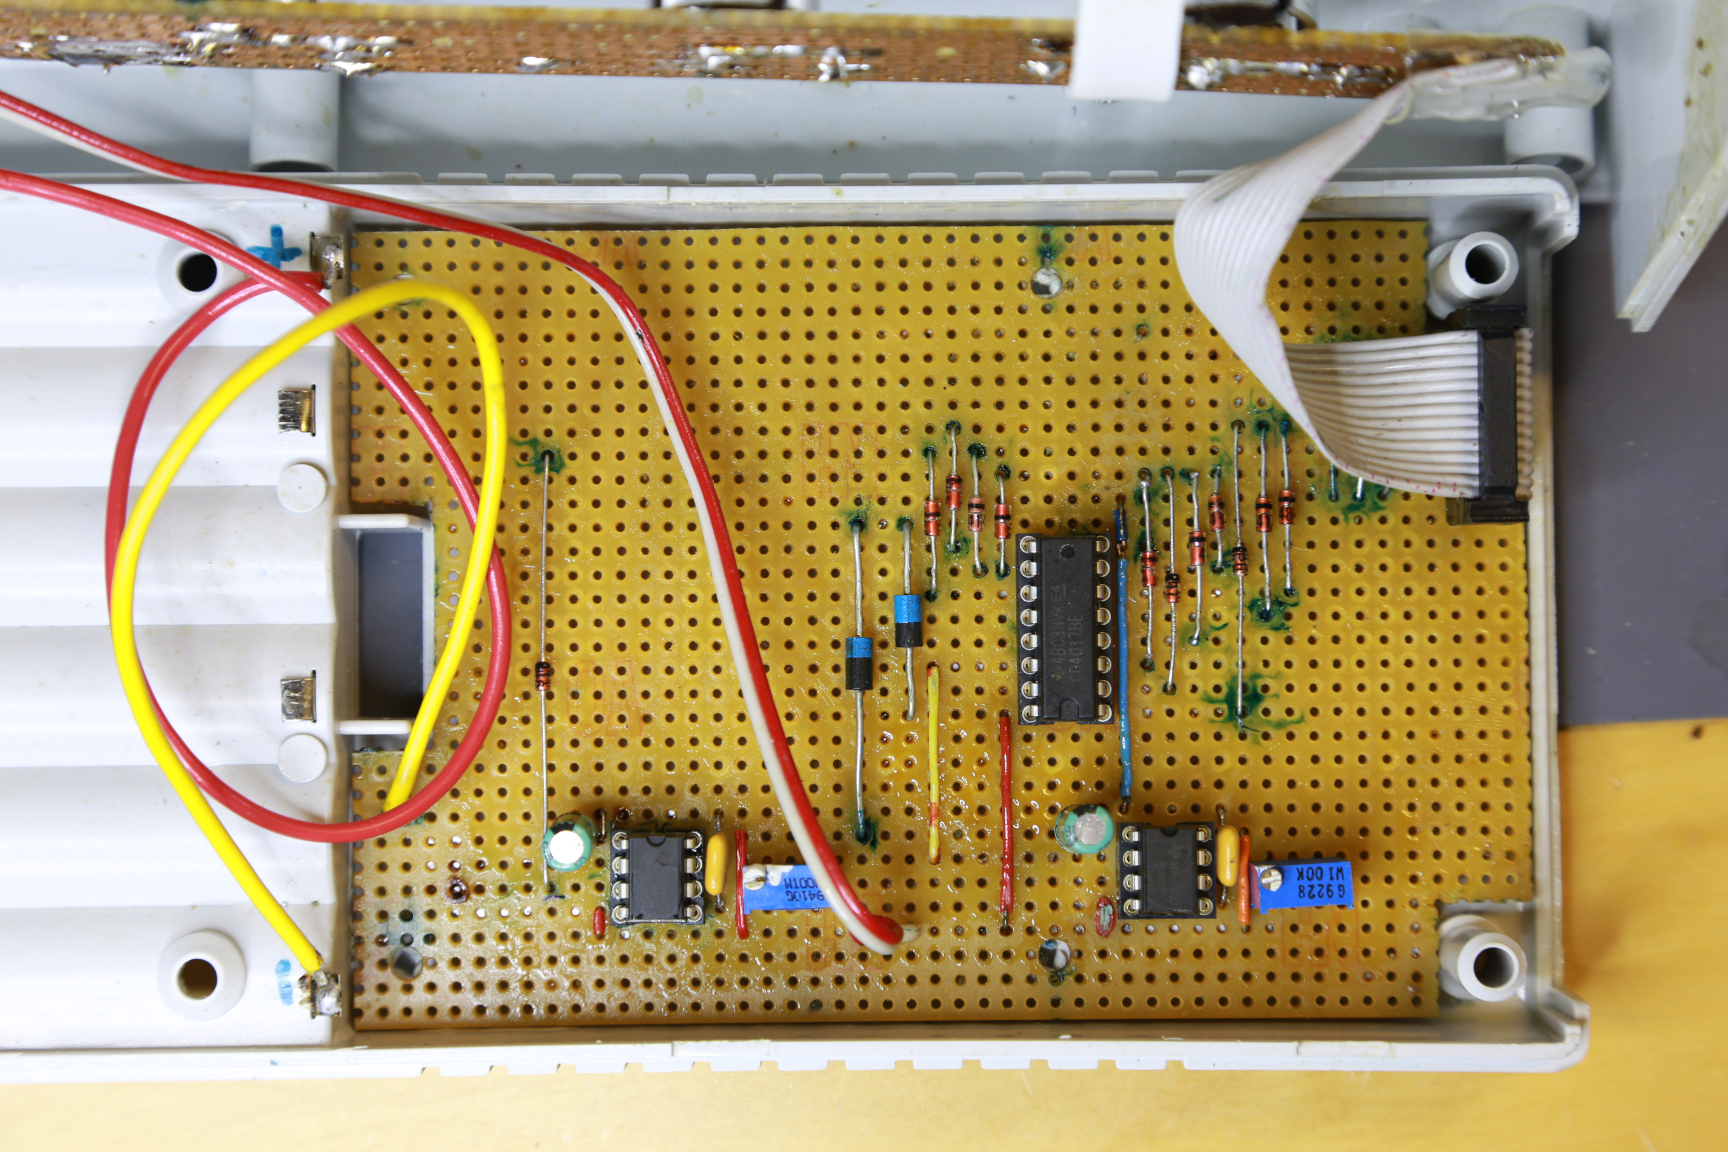 All components on a perfoboard